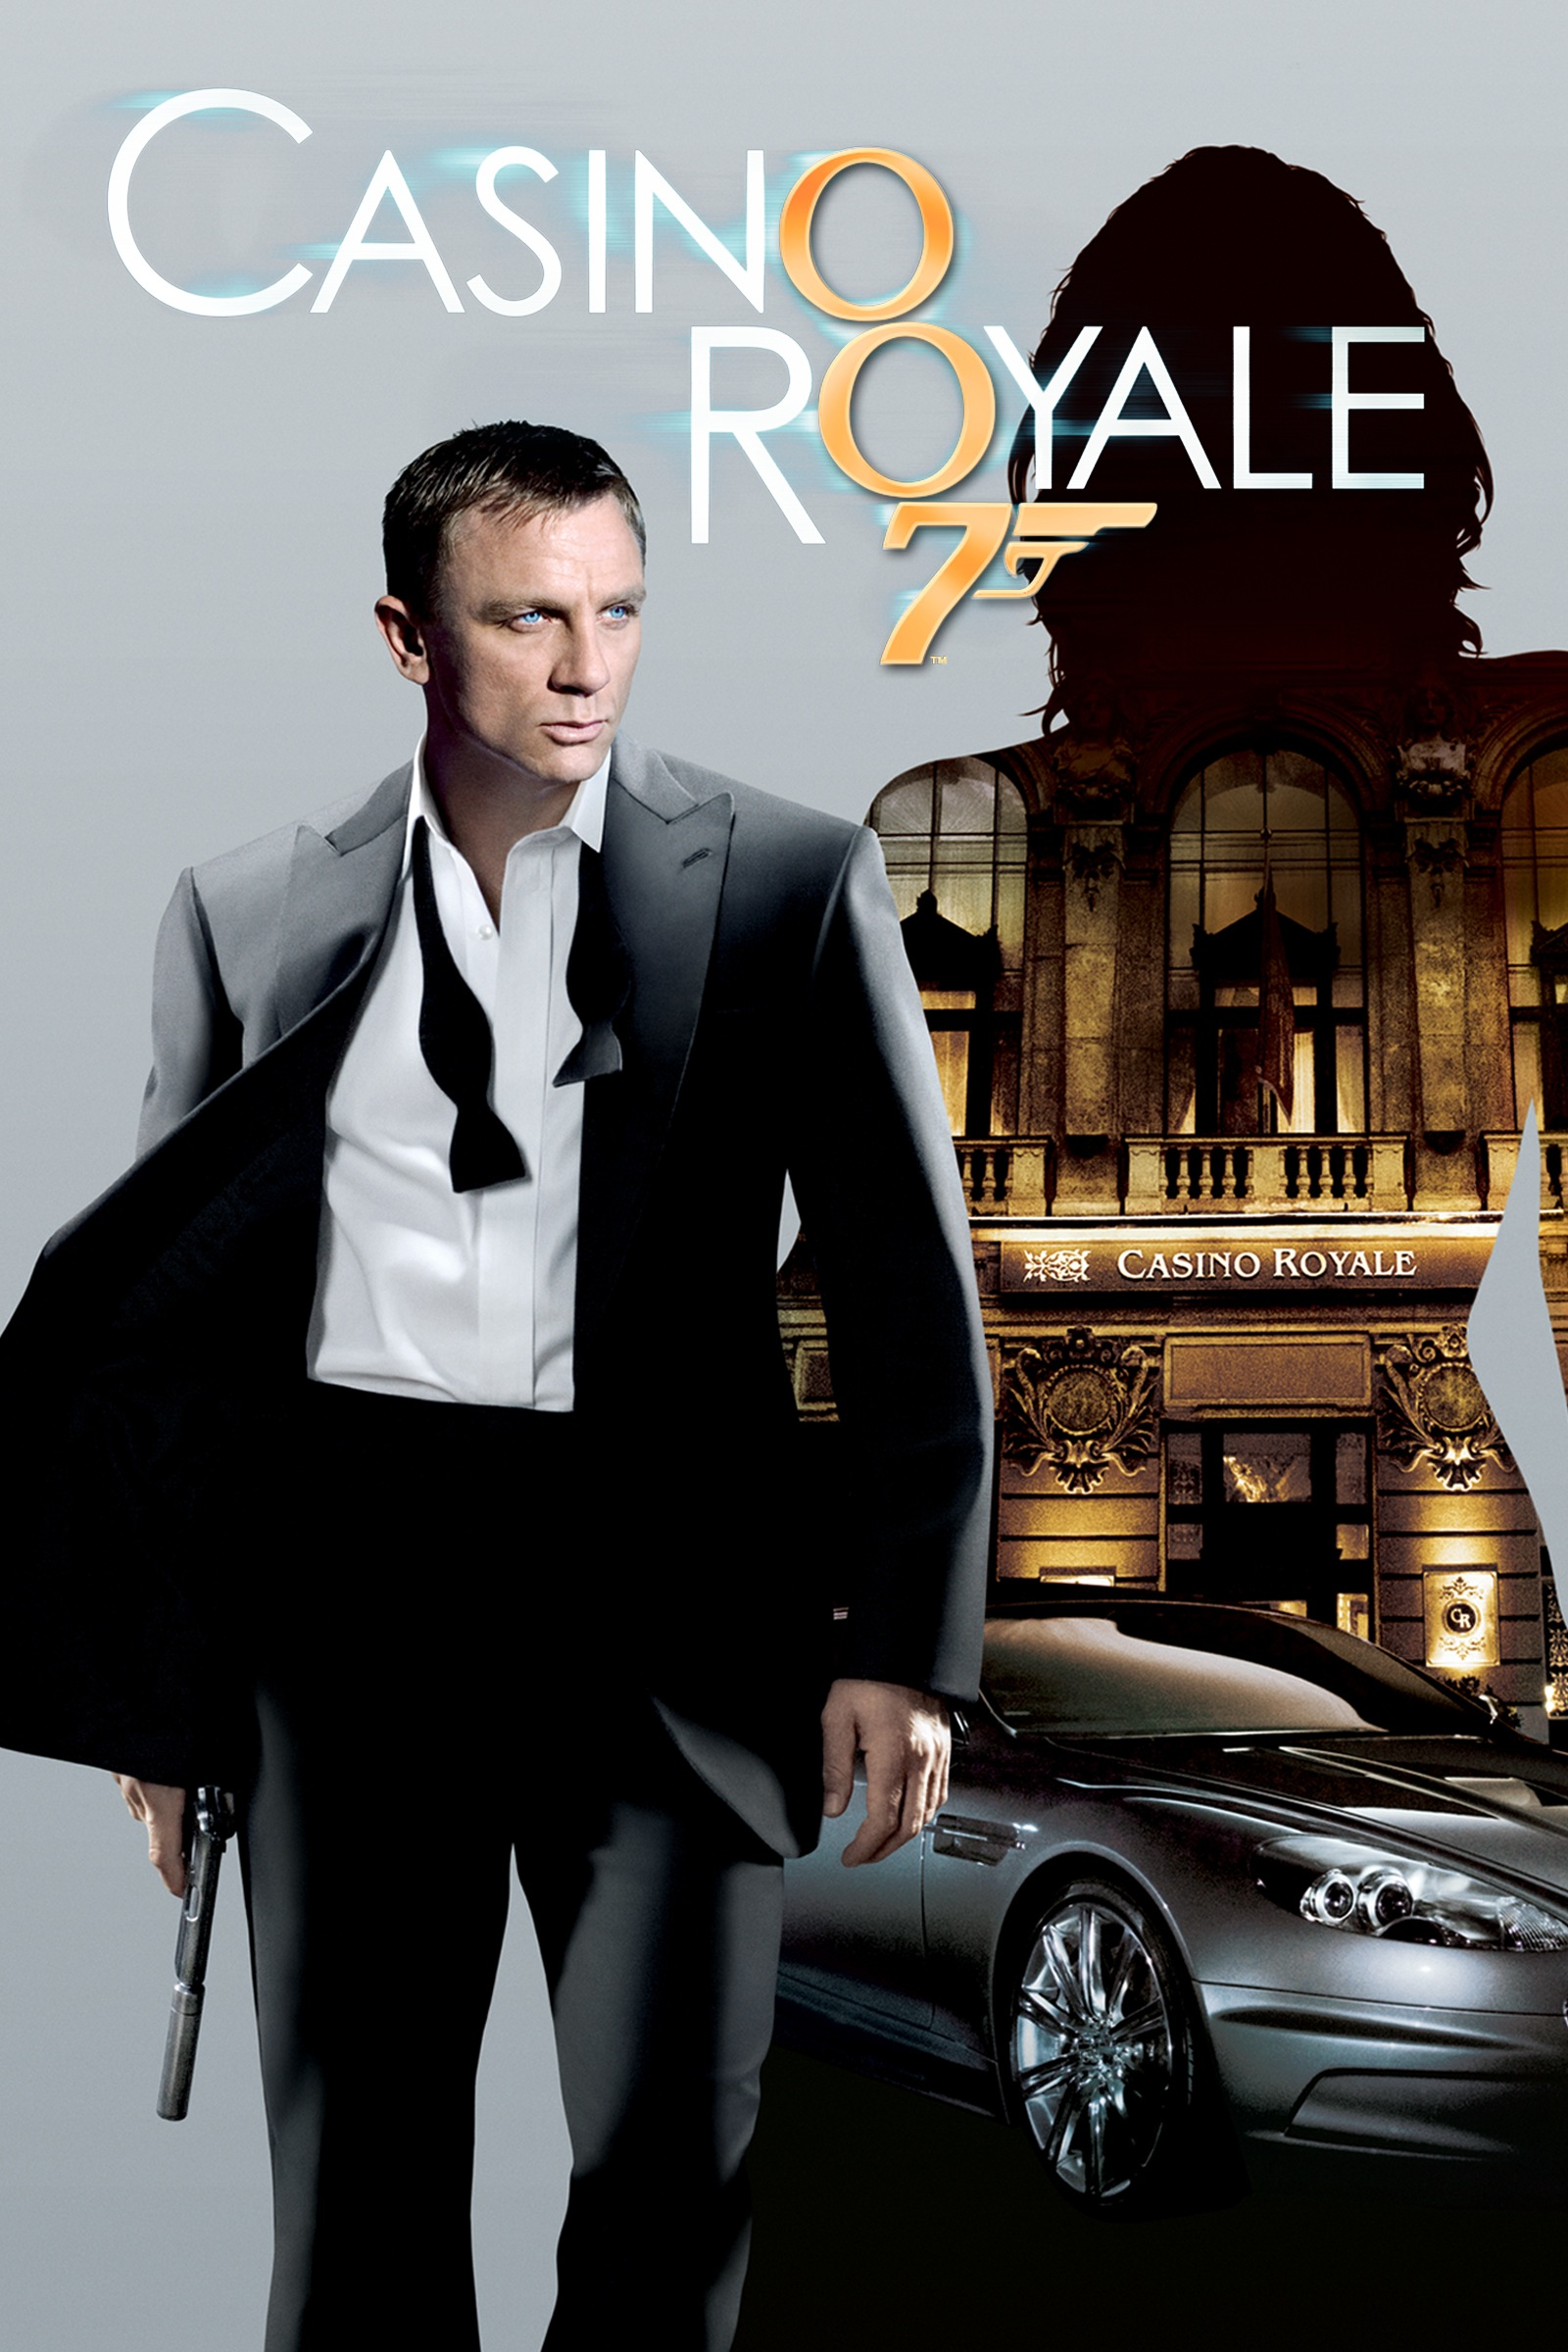 007 james bond casino royale password gambling national addiction or harmless pastime